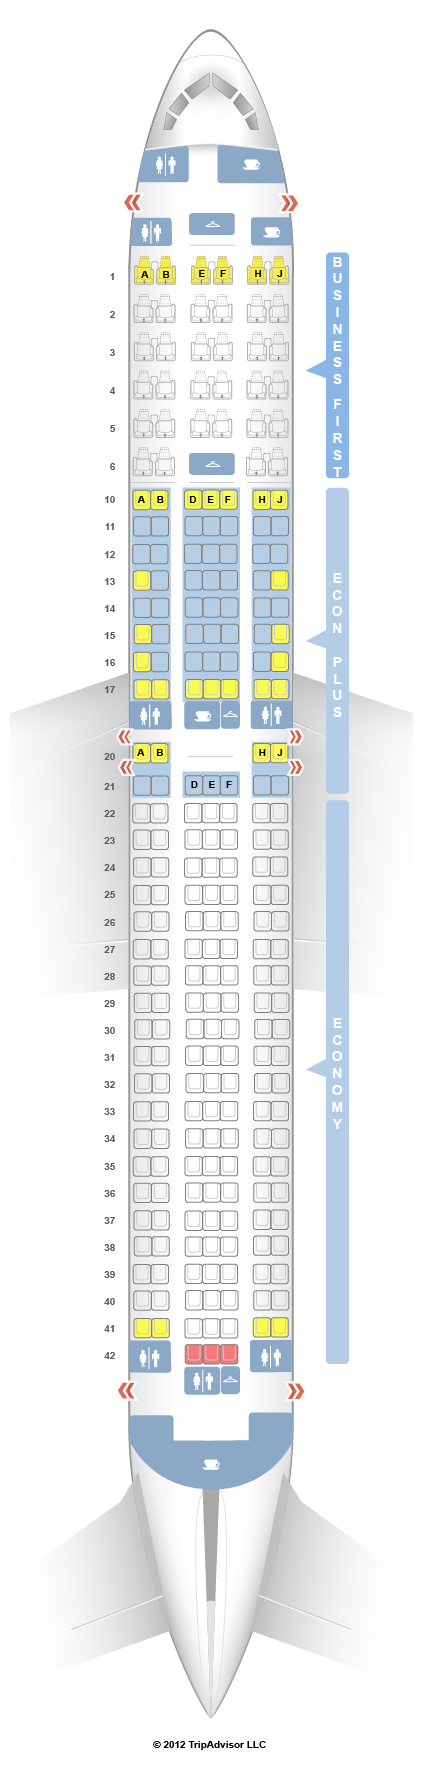 seatguru seat map united